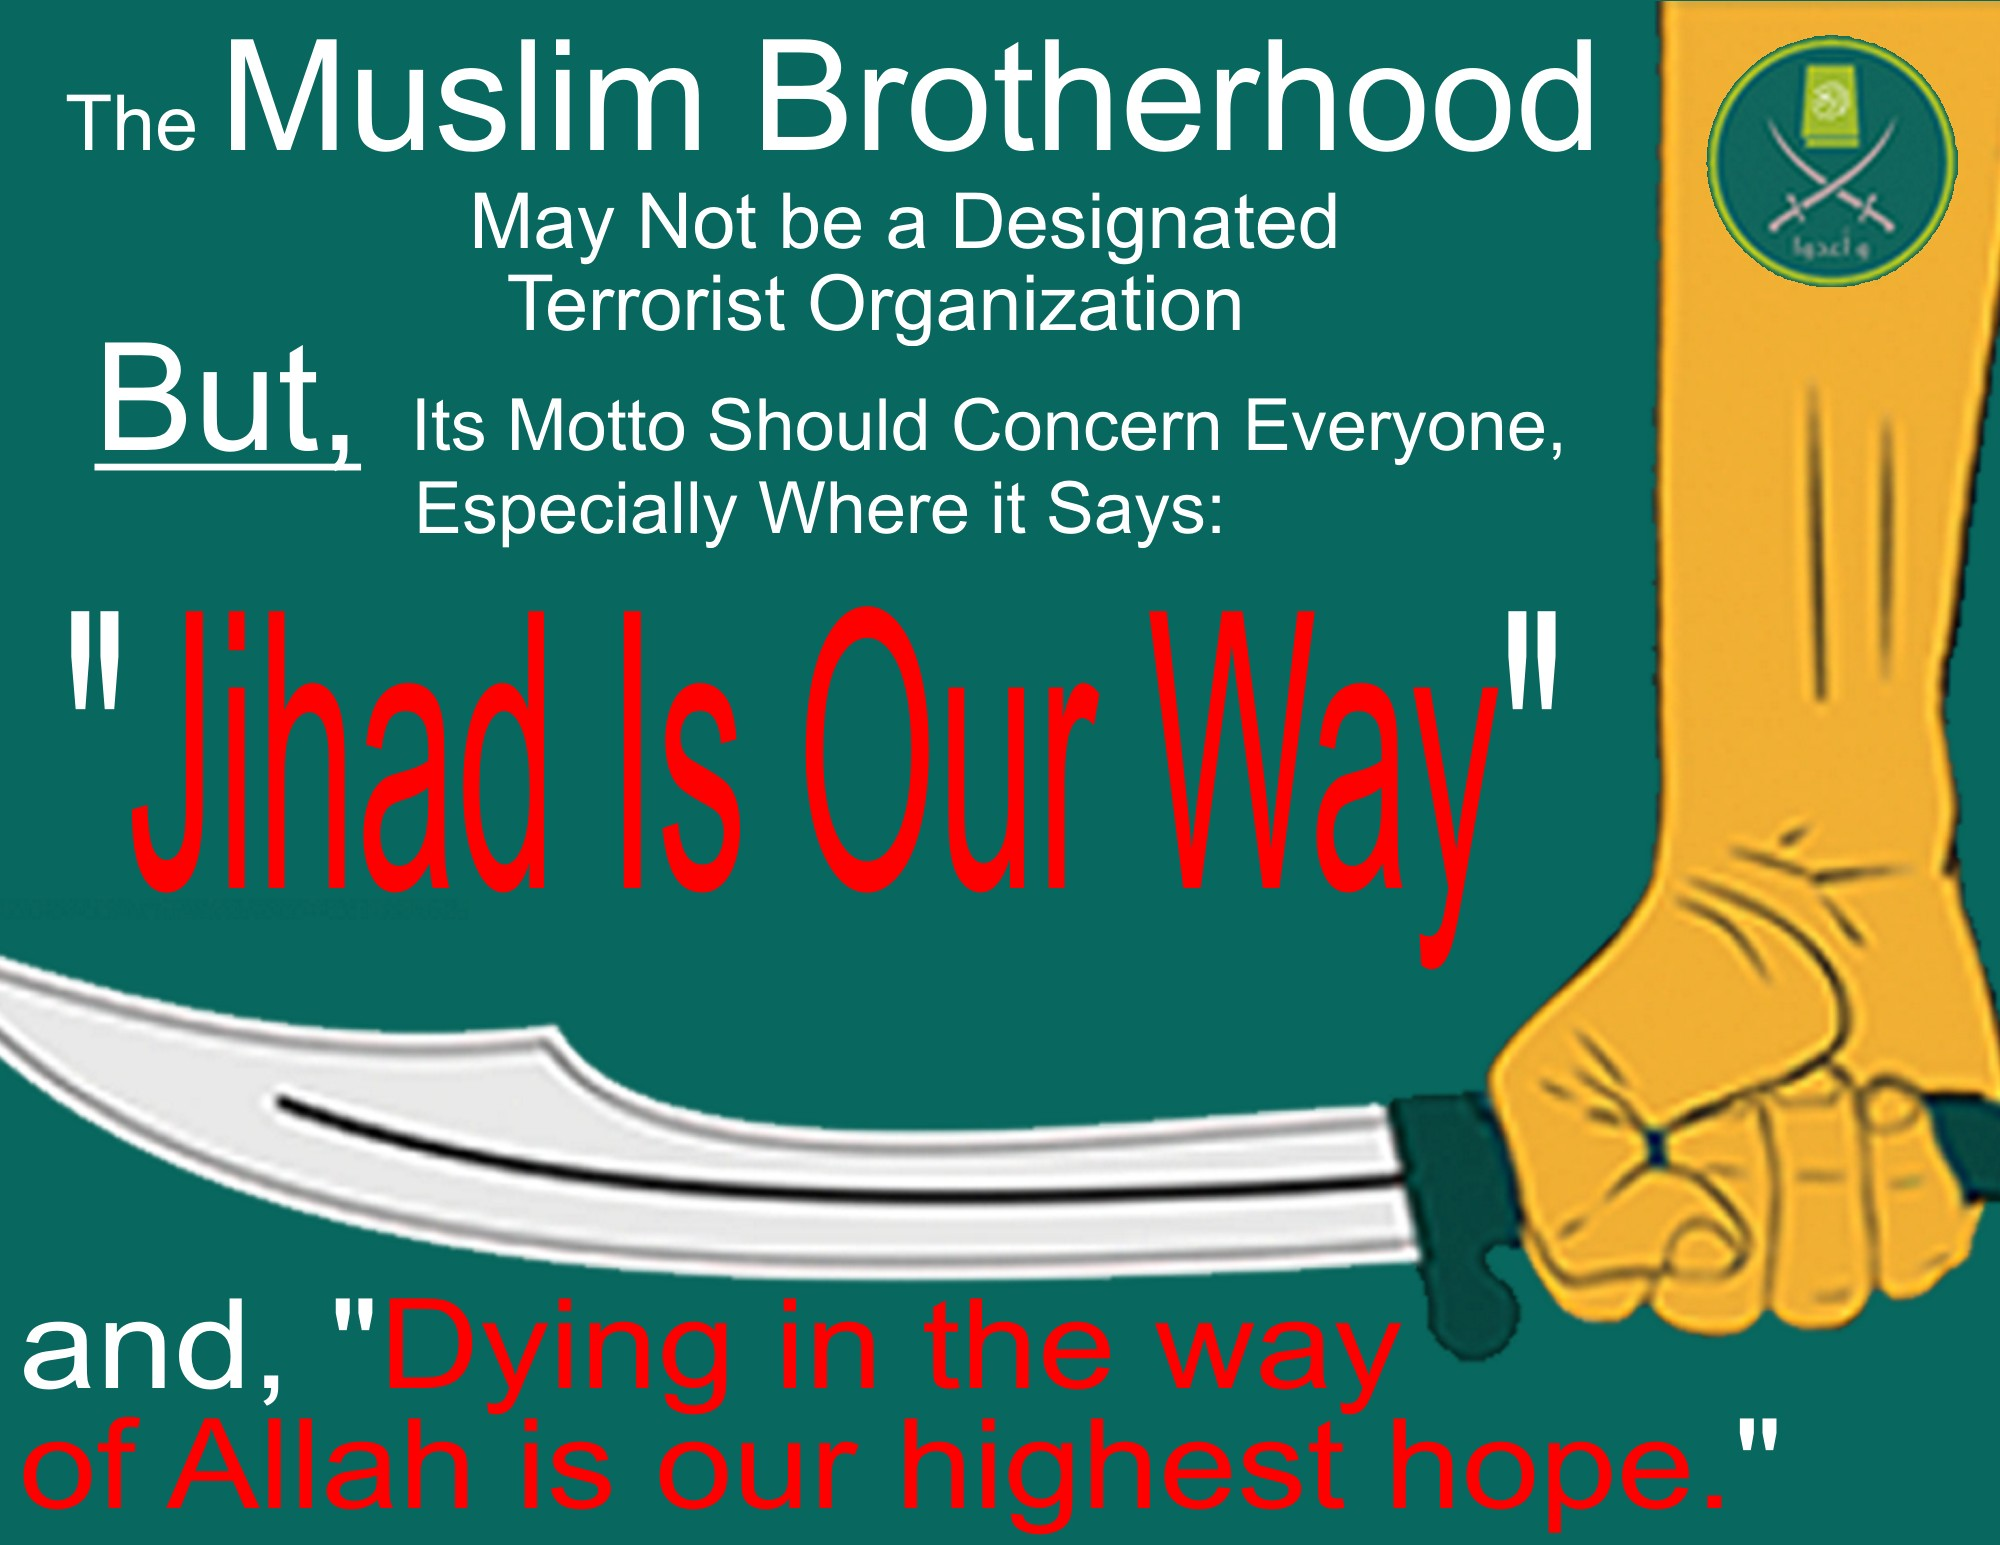 Muslim Brotherhood has a Threatening Motto